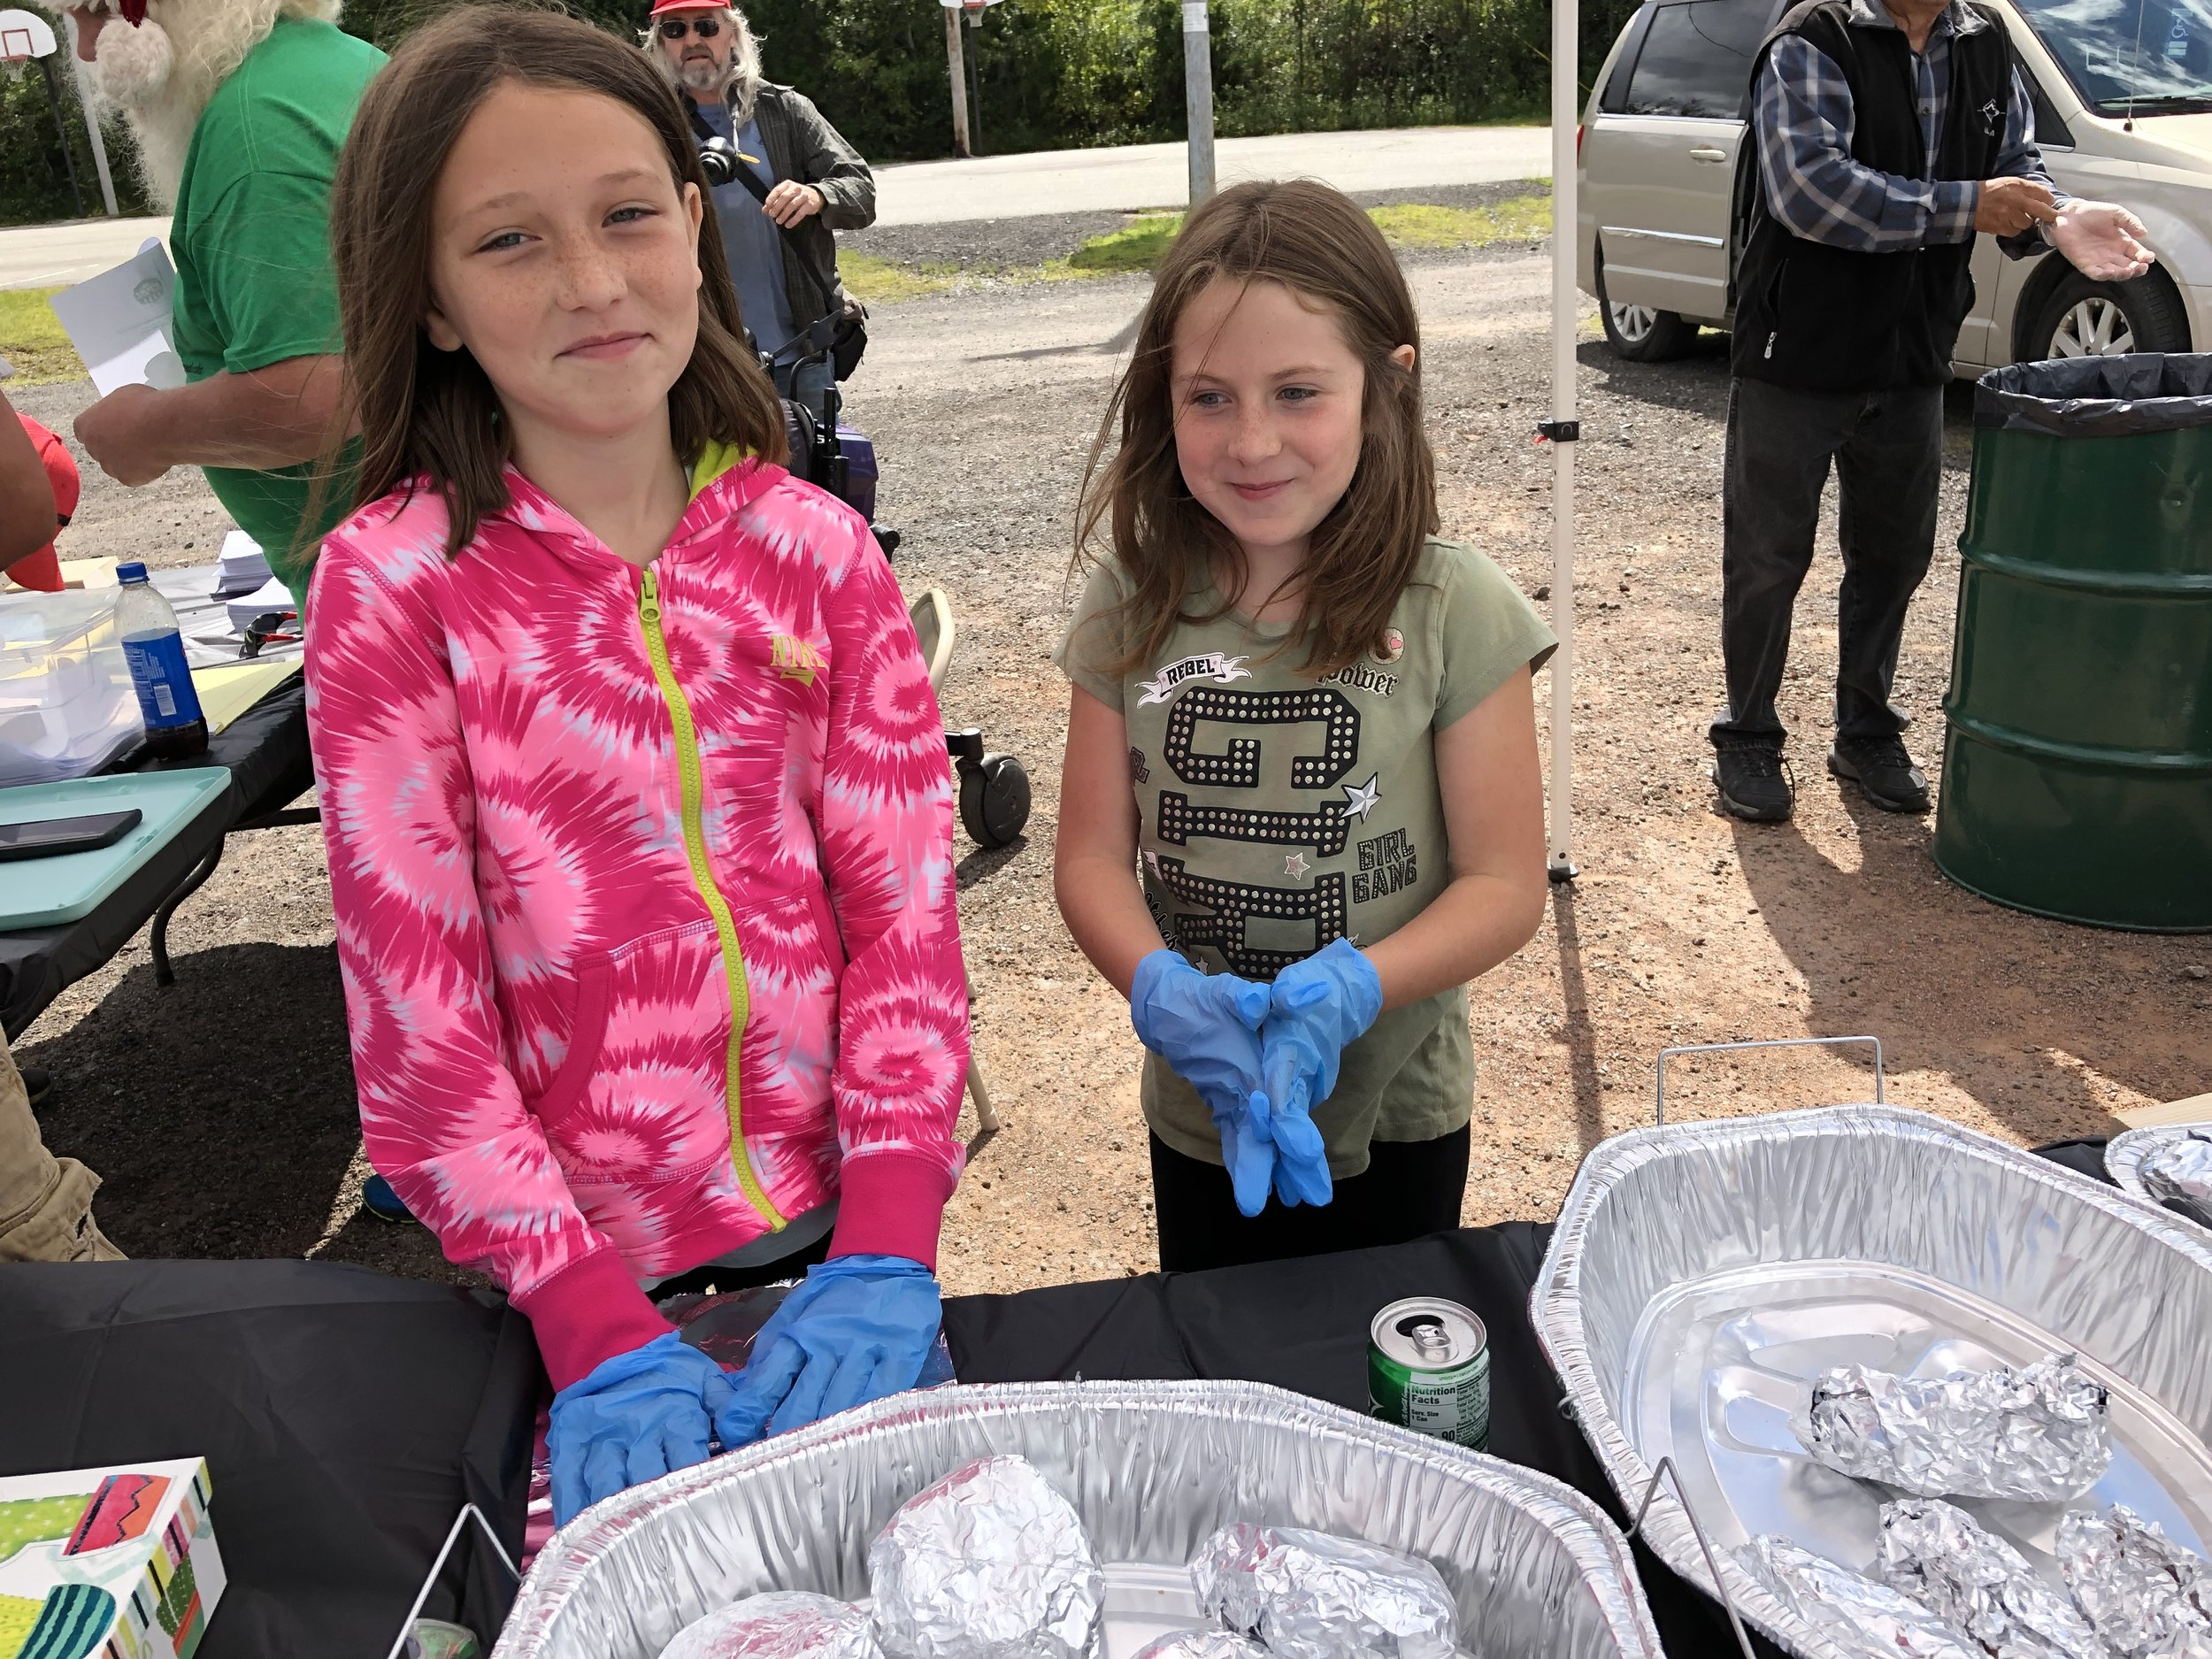 Brina Reandeau and Eliza Bujold, who are part of Tupper Lake's new New York Life family, were helping distribute freshly grilled hot dogs and hamburgers to voters Saturday.